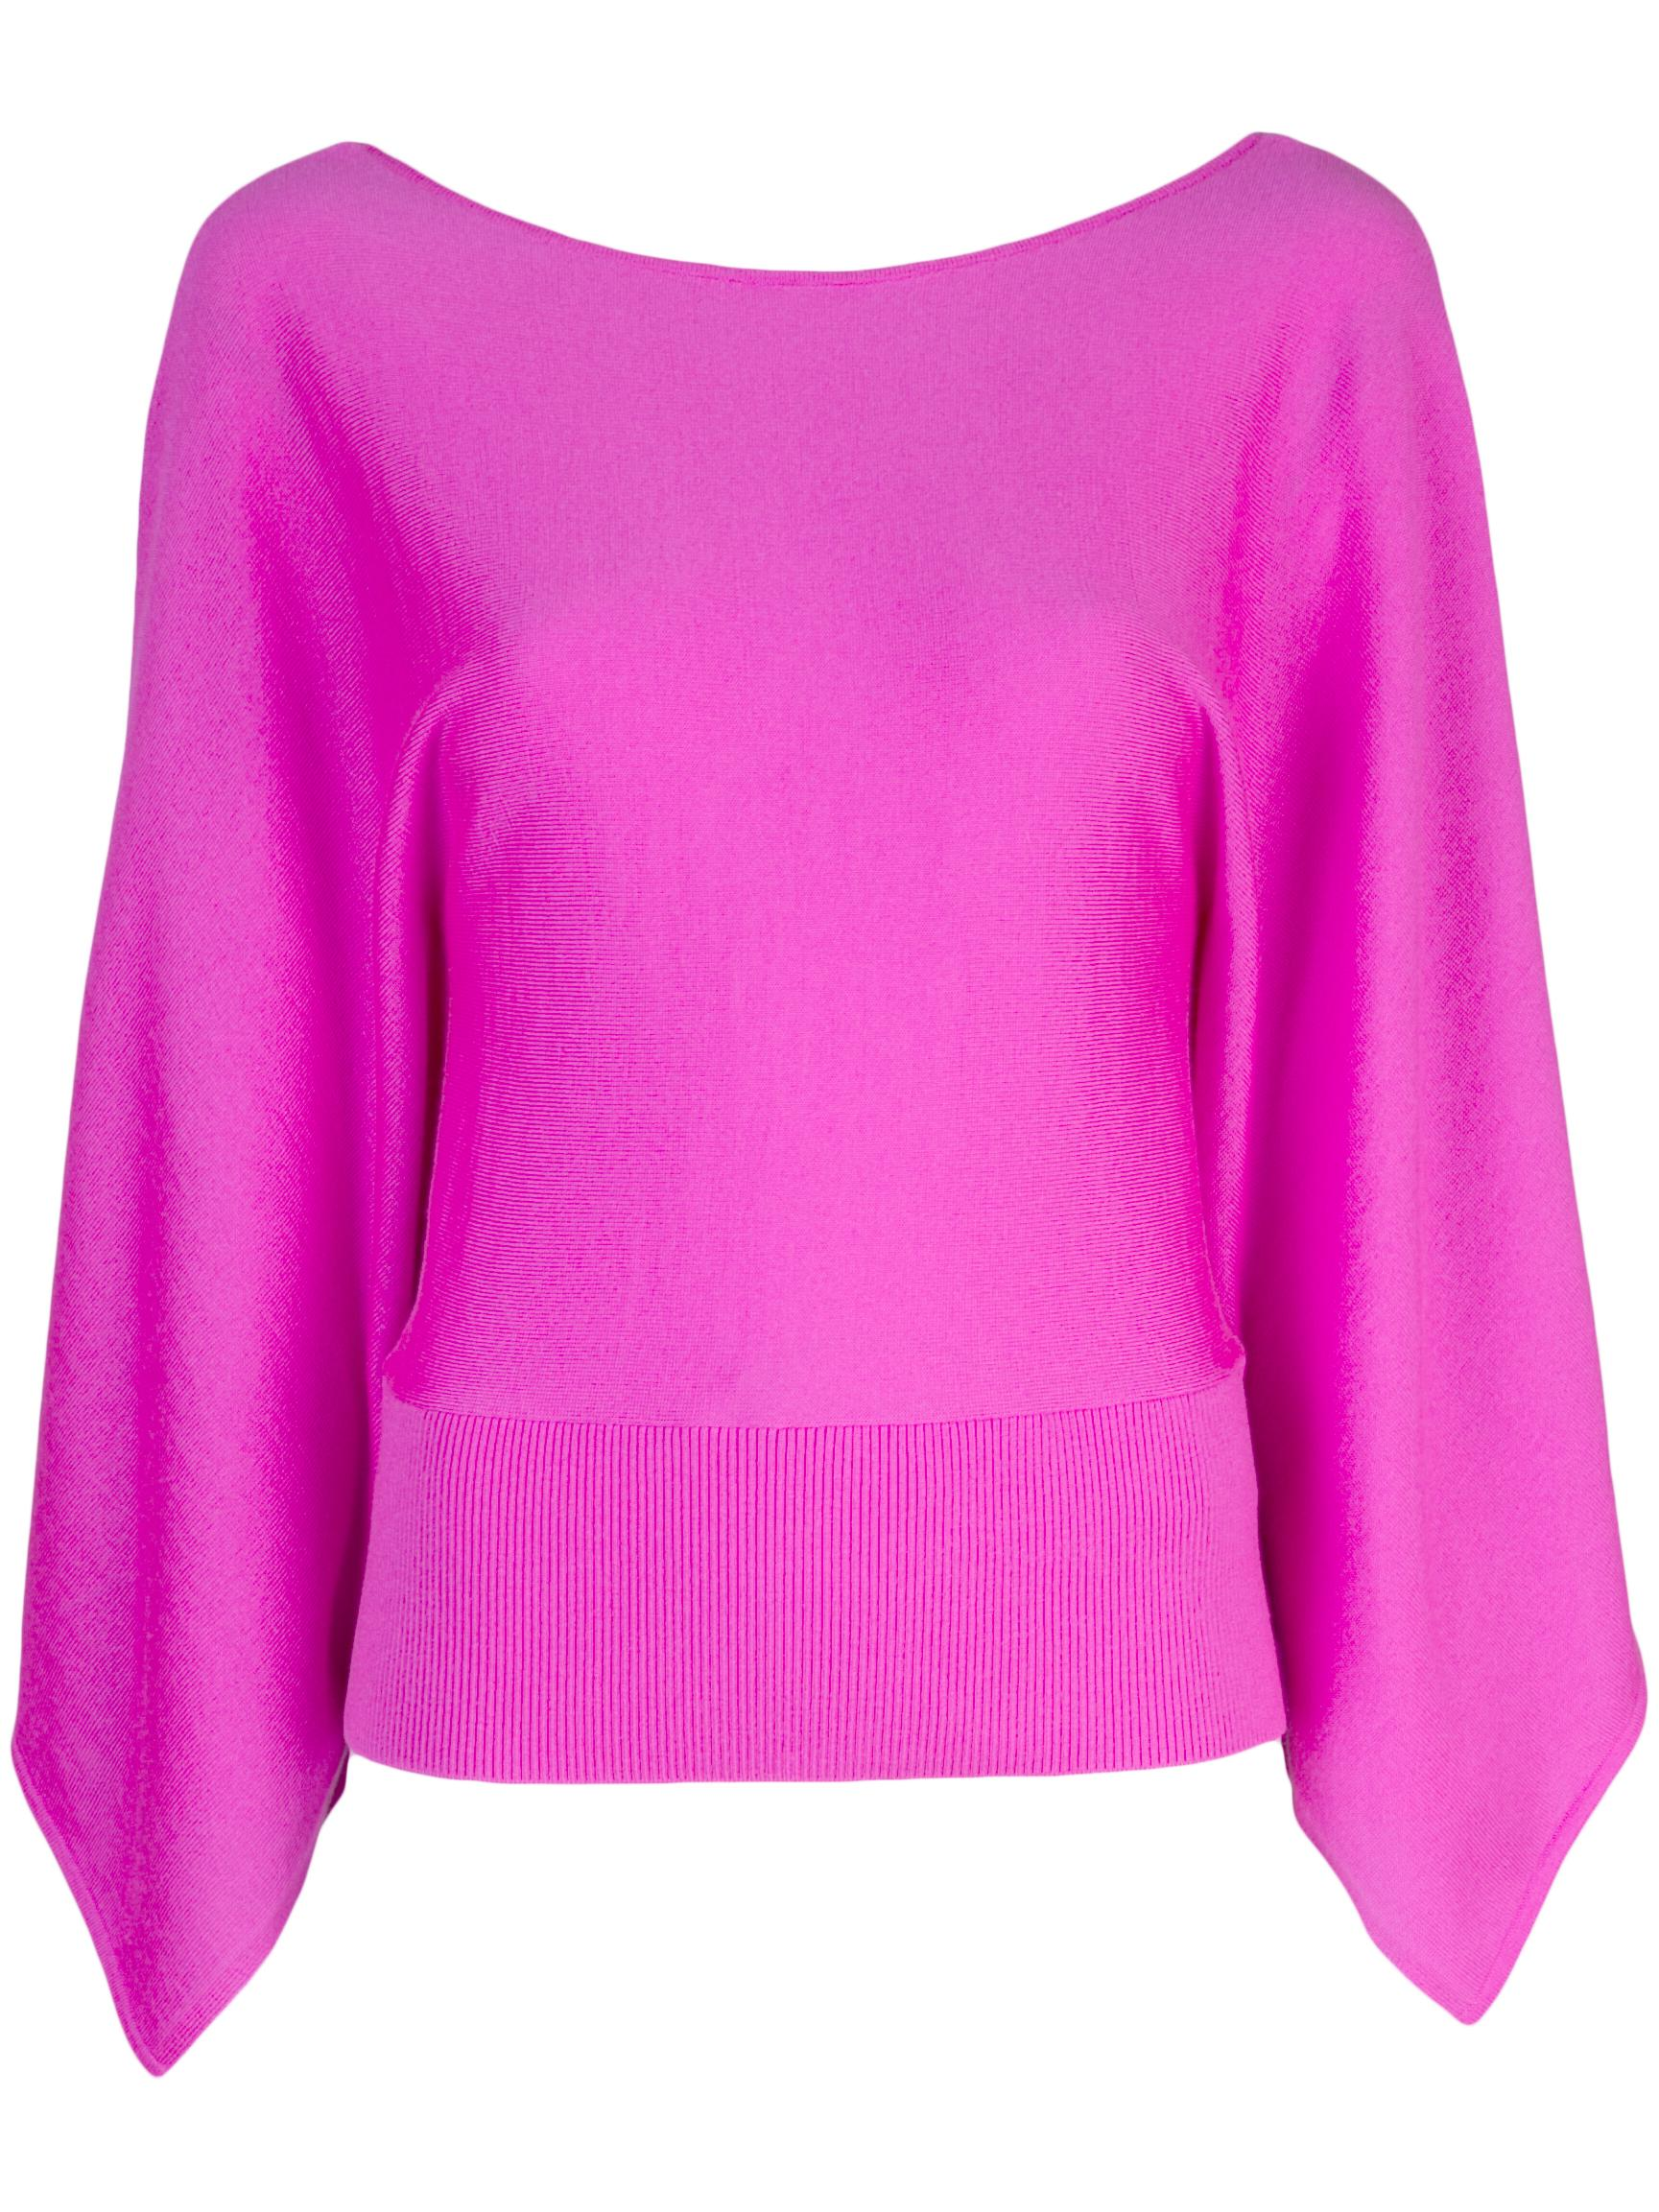 Boatneck Sweater With Drape Sleeves